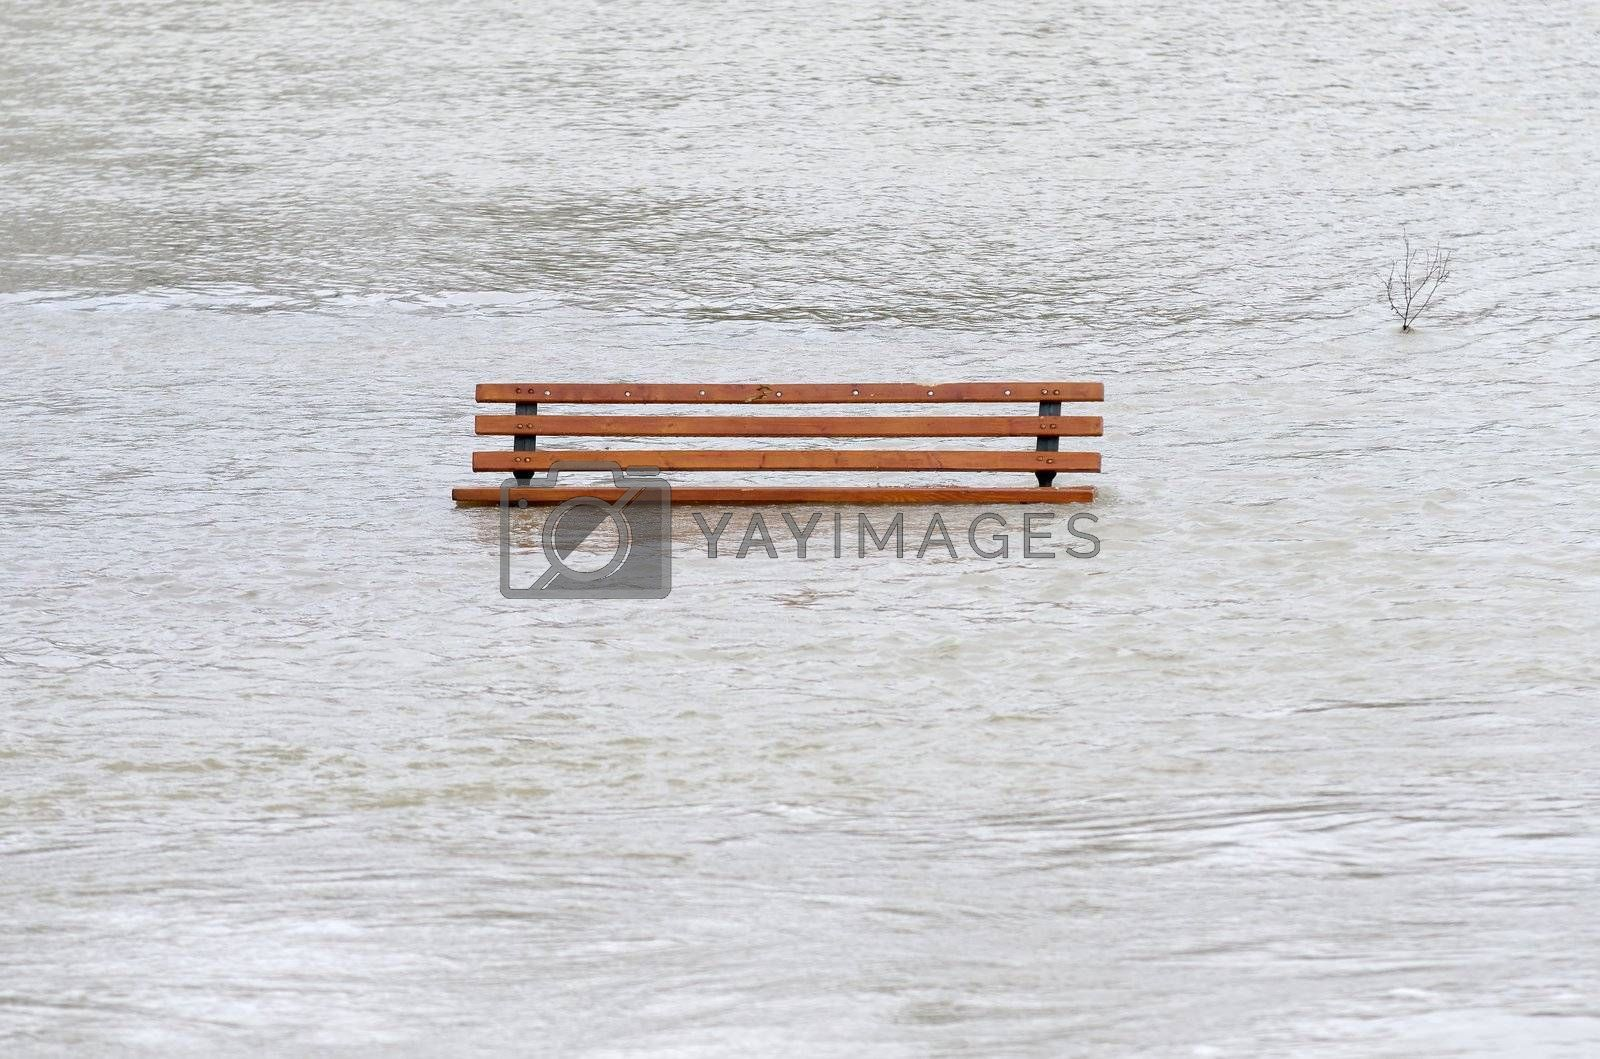 a  park bench surrounded by water